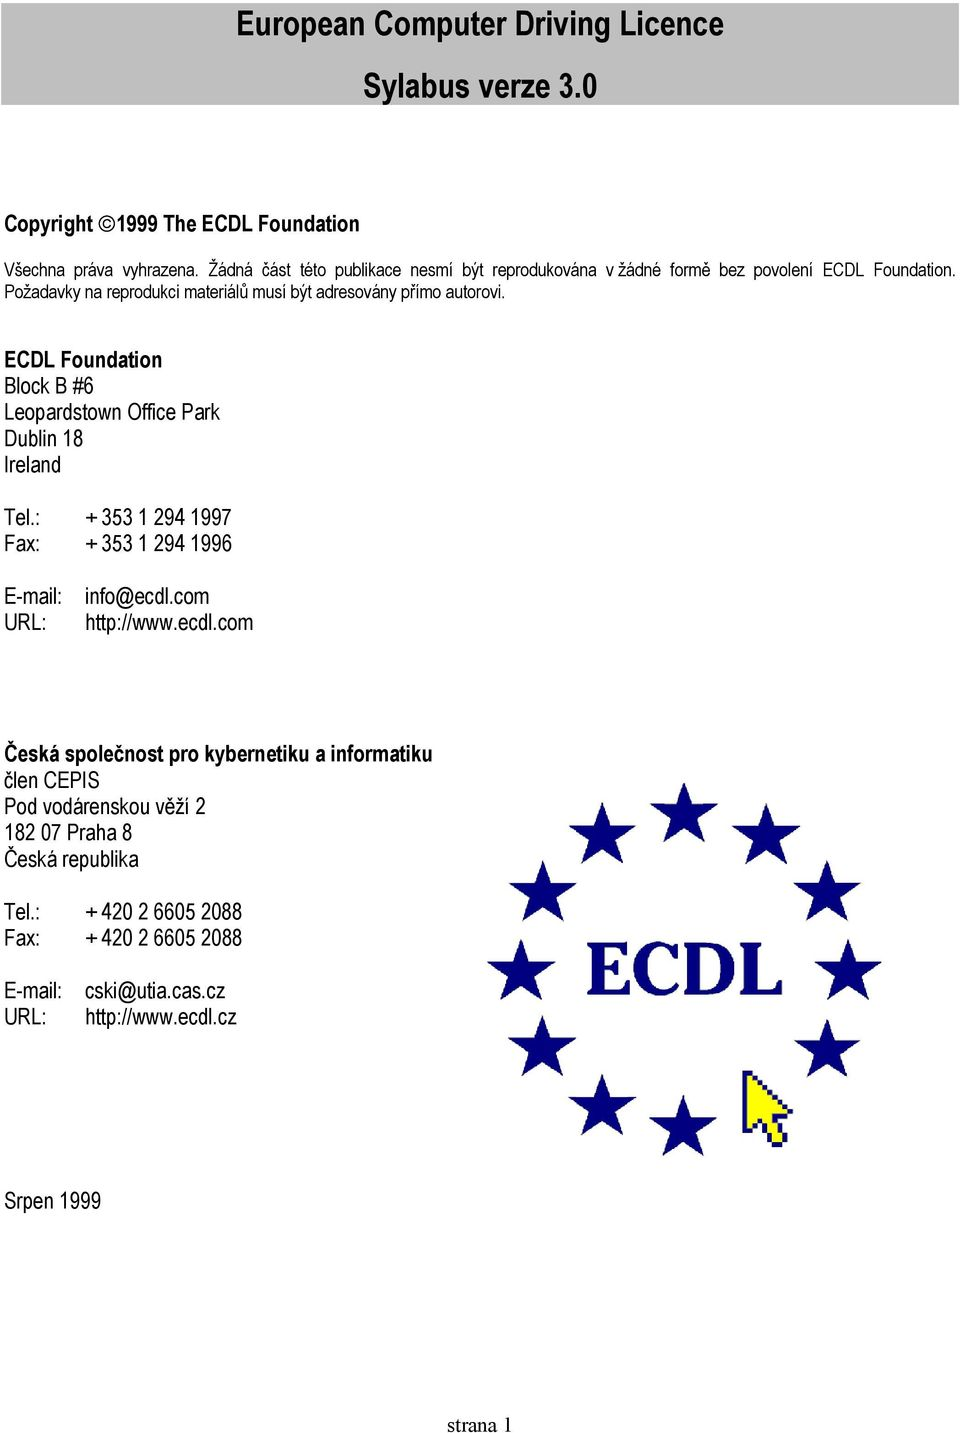 ECDL Foundation Block B #6 Leopardstown Office Park Dublin 18 Ireland Tel.: + 353 1 294 1997 Fax: + 353 1 294 1996 E-mail: URL: info@ecdl.